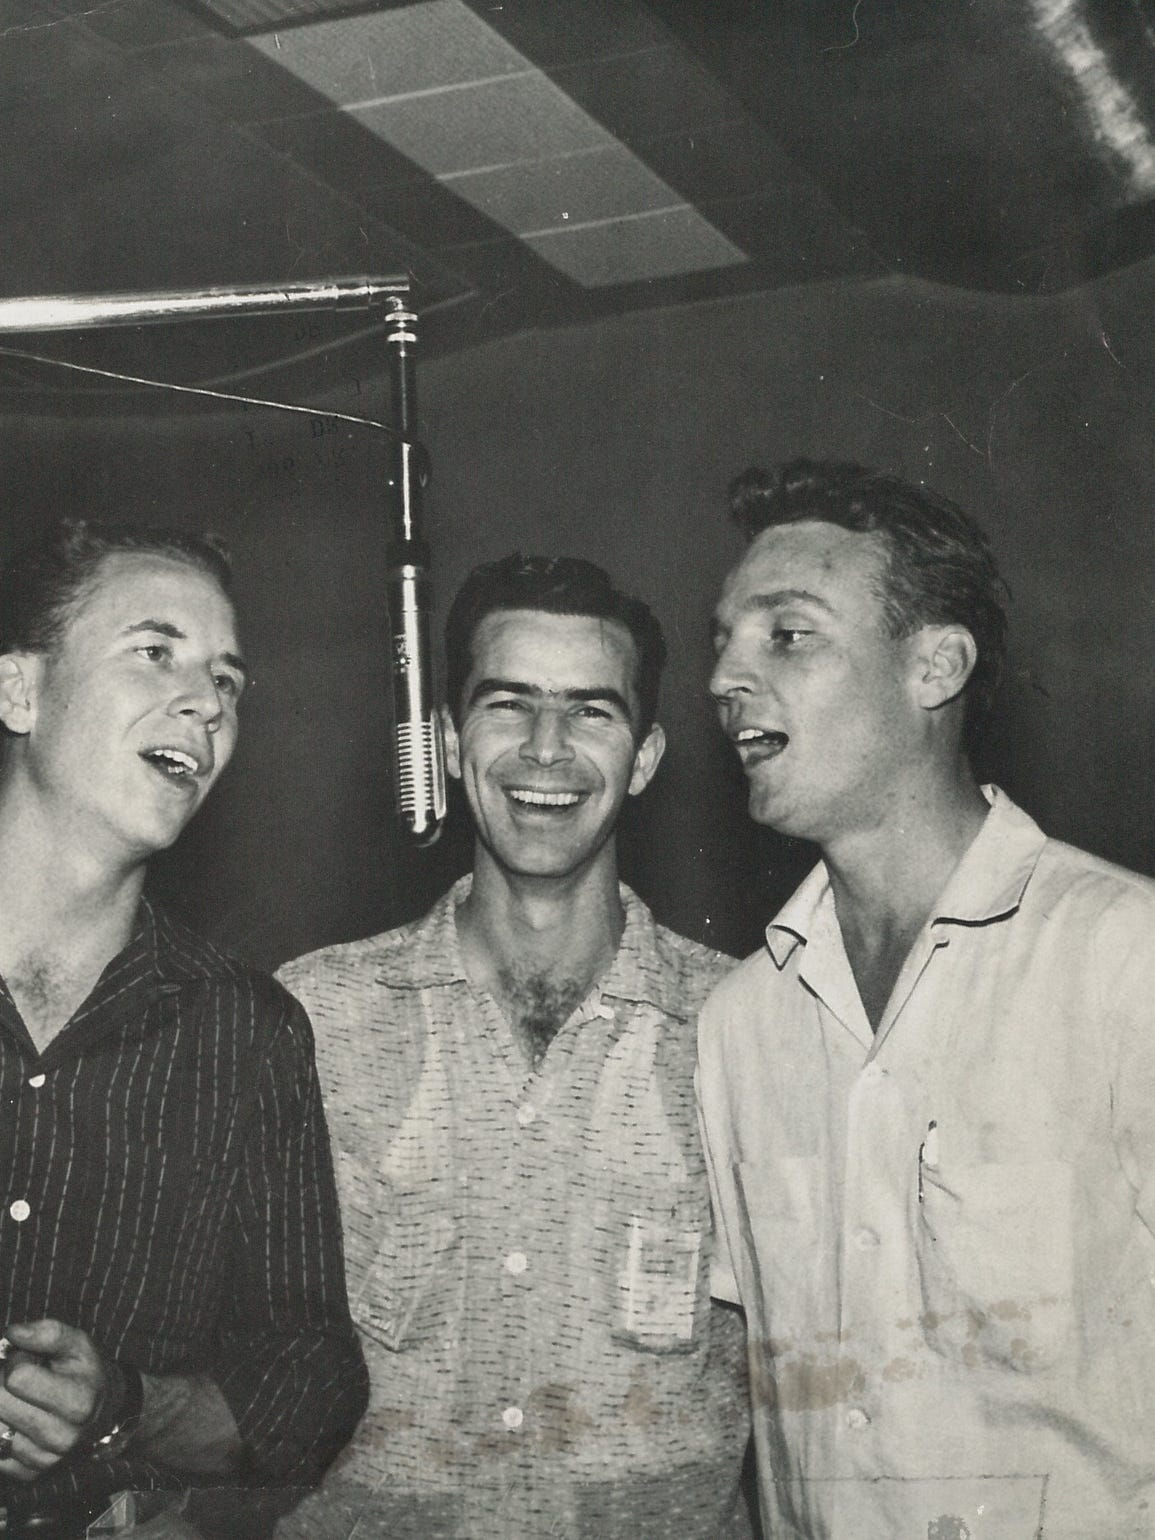 The Picks in 1957: From left, John Pickering, Bill